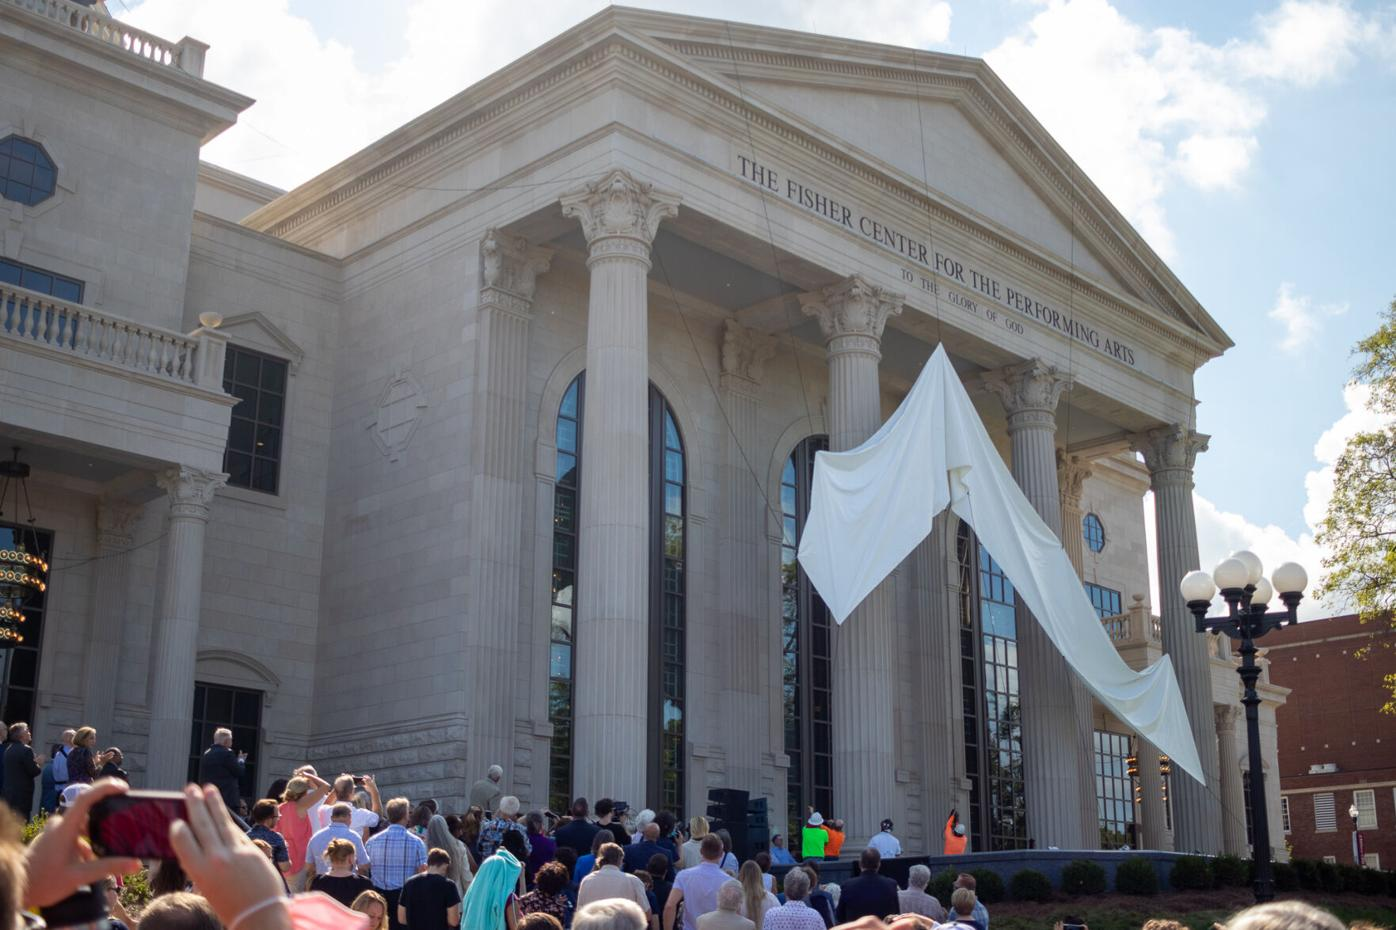 Fisher Center for the Performing Arts name unveiled